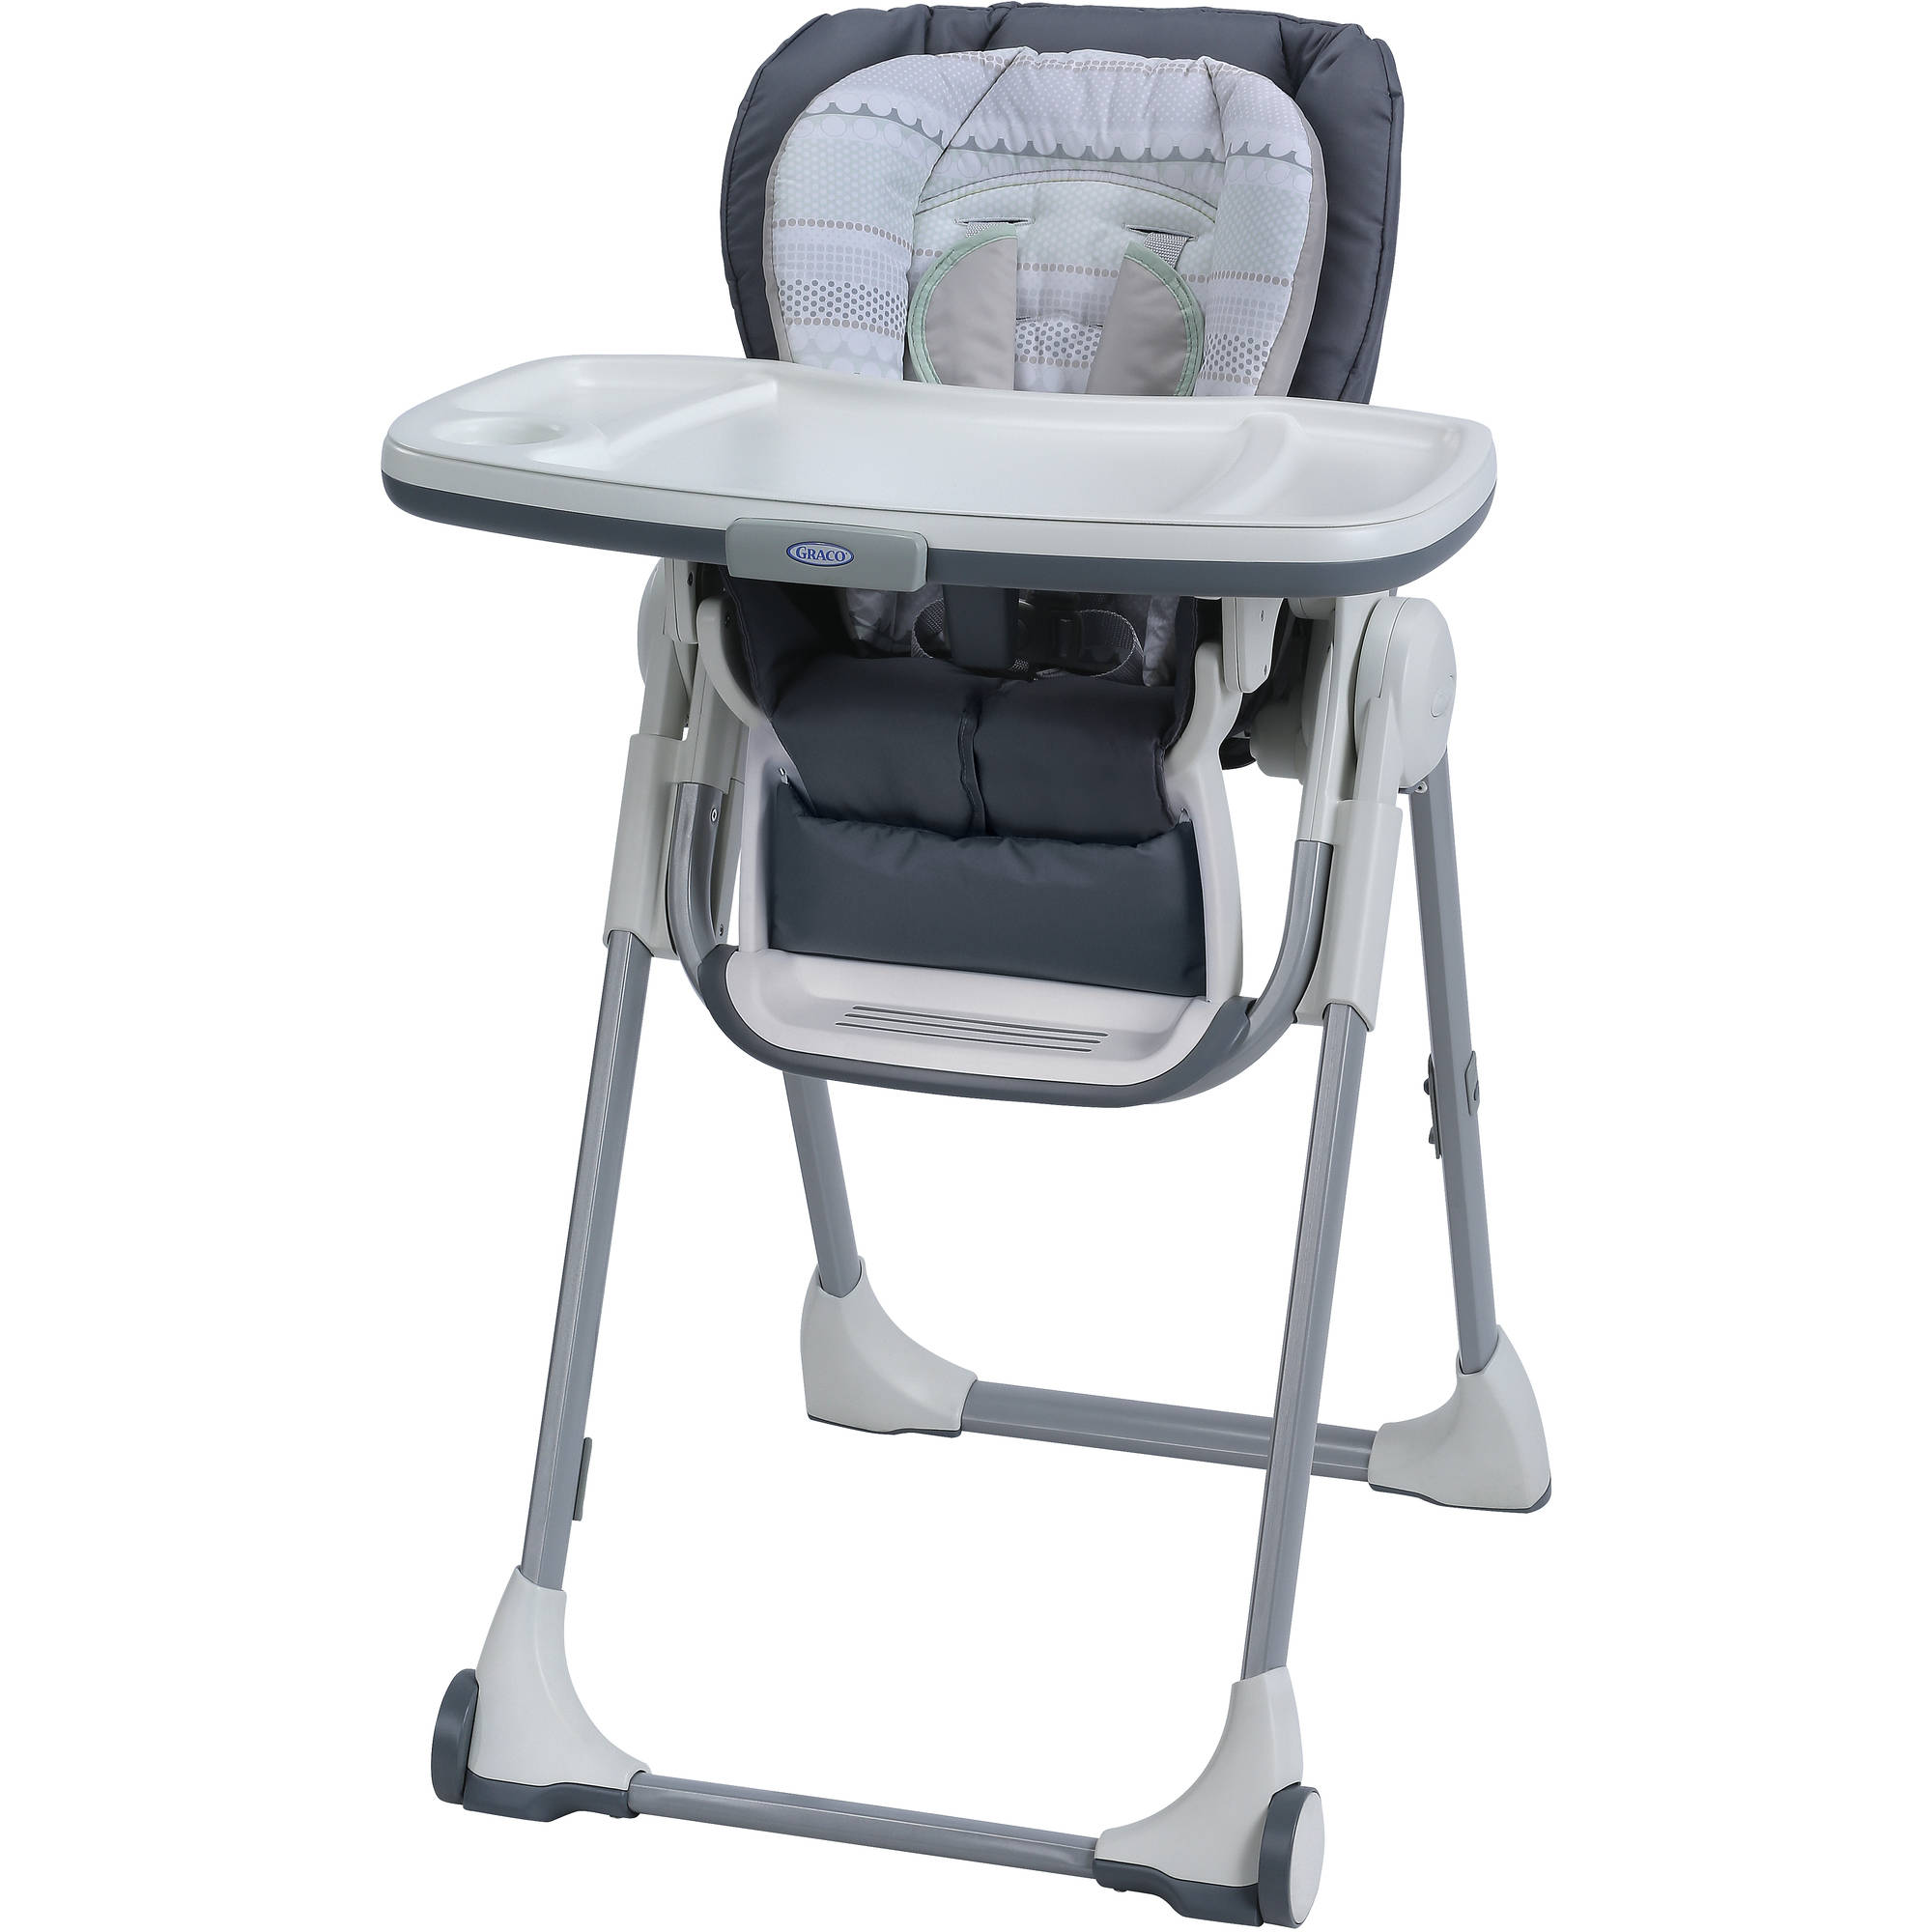 Graco Swift Fold LX High Chair, Mason